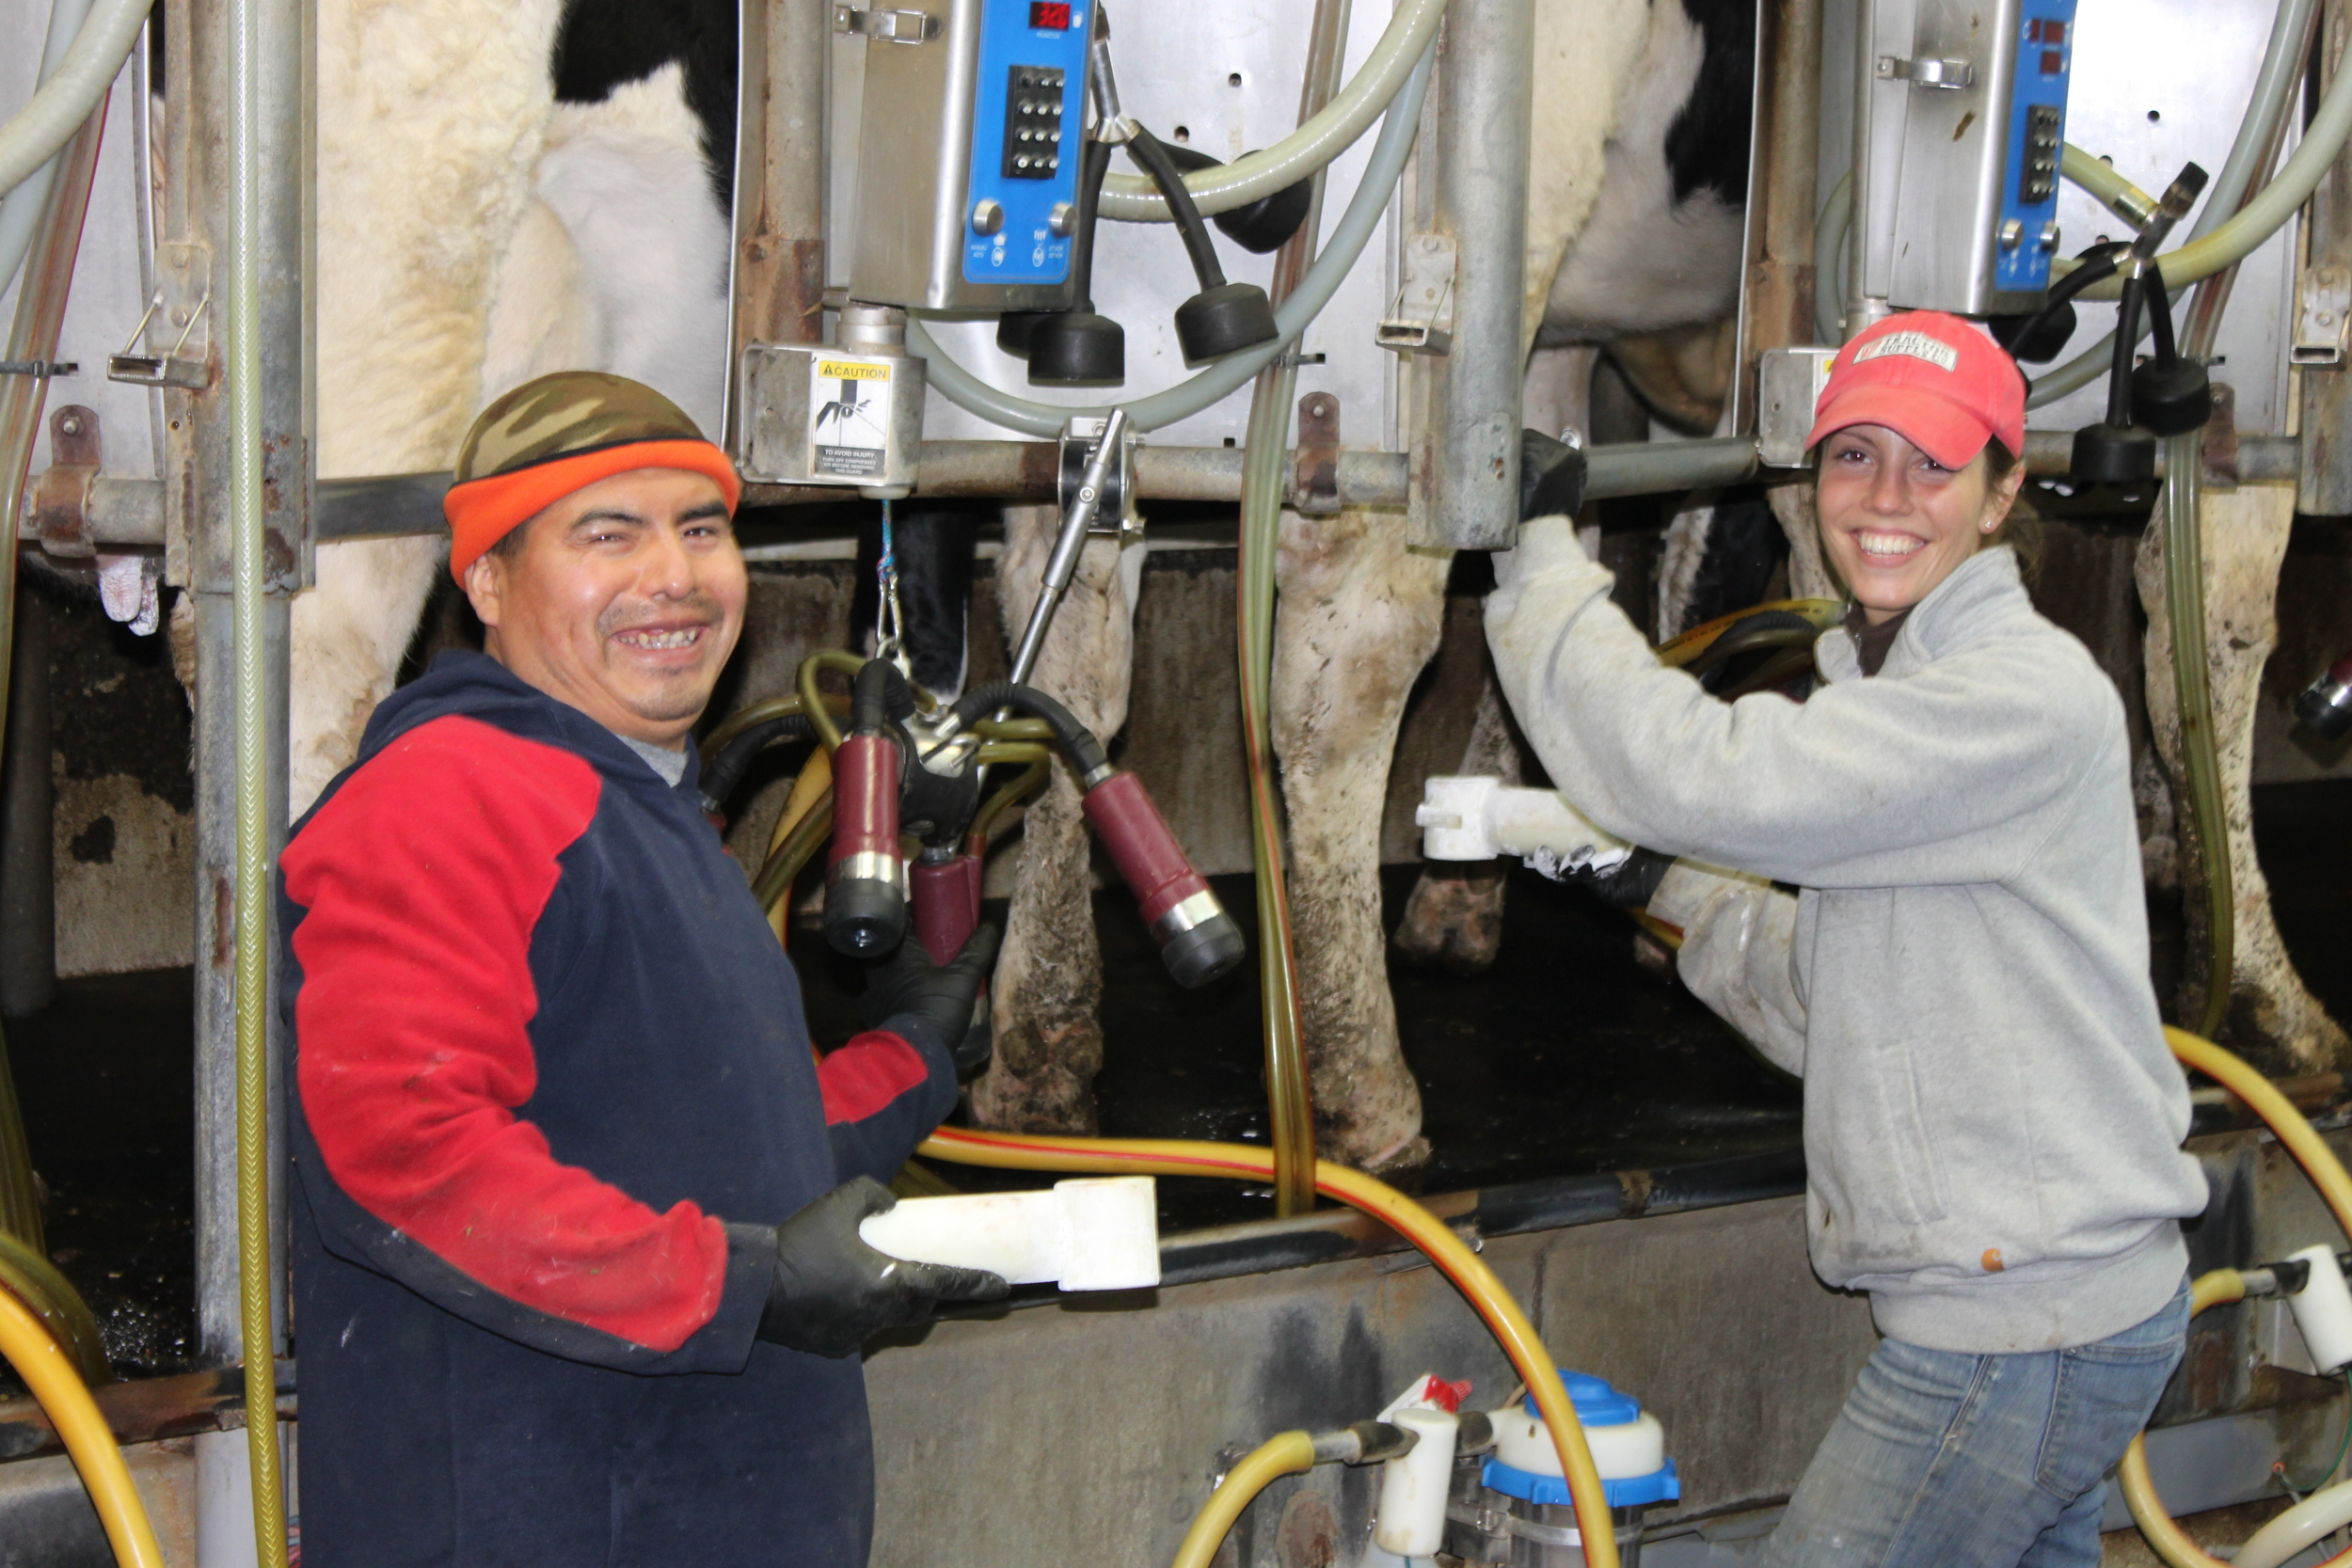 Nemo and Paige in the milking parlor. Our cows are milked twice a day.